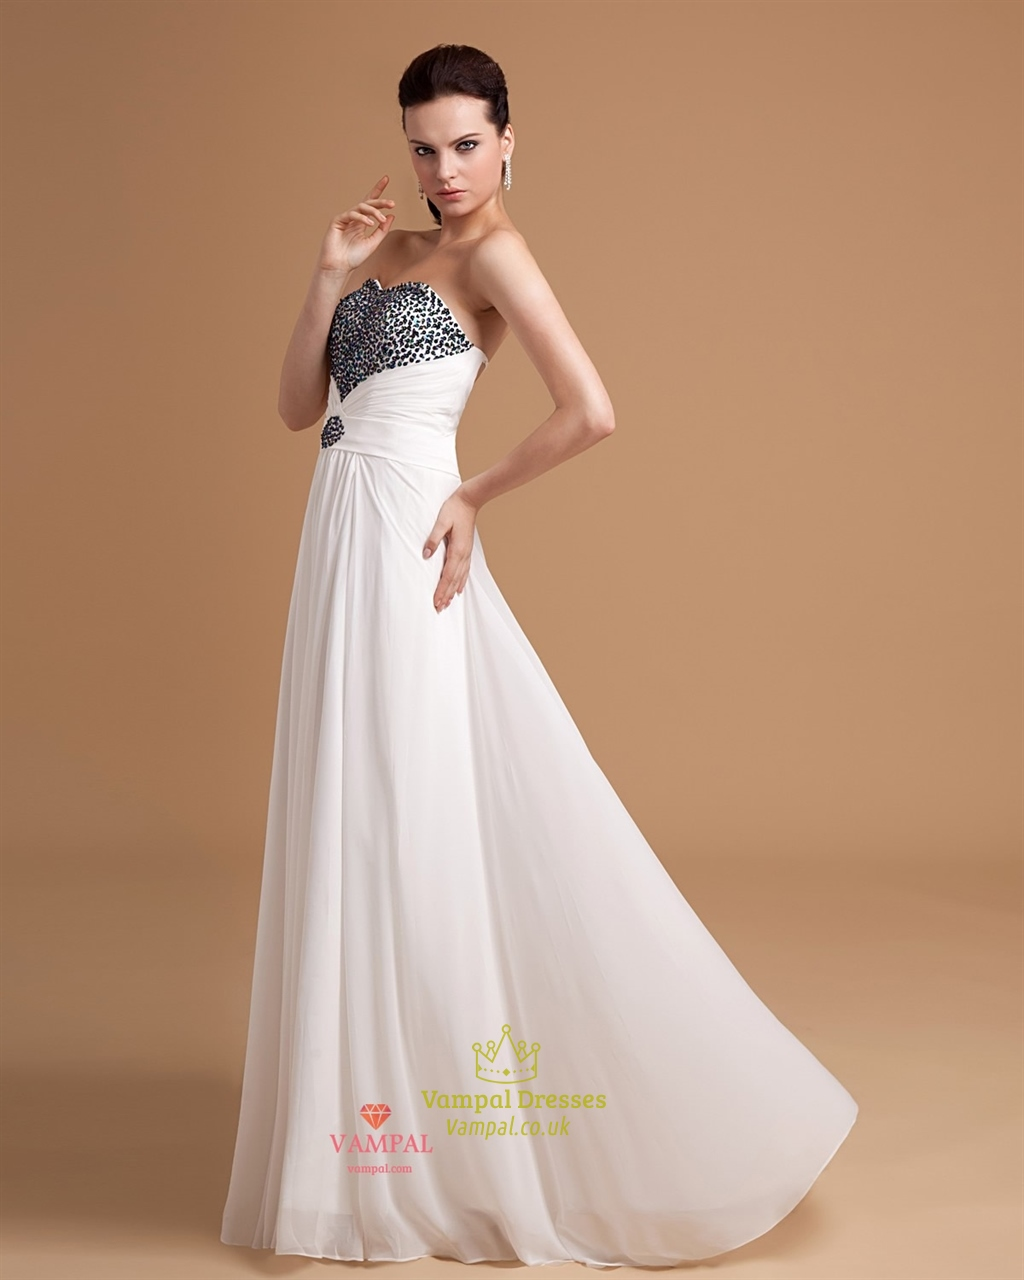 Gowns For Women: White Evening Gowns For Women,Black And White Evening